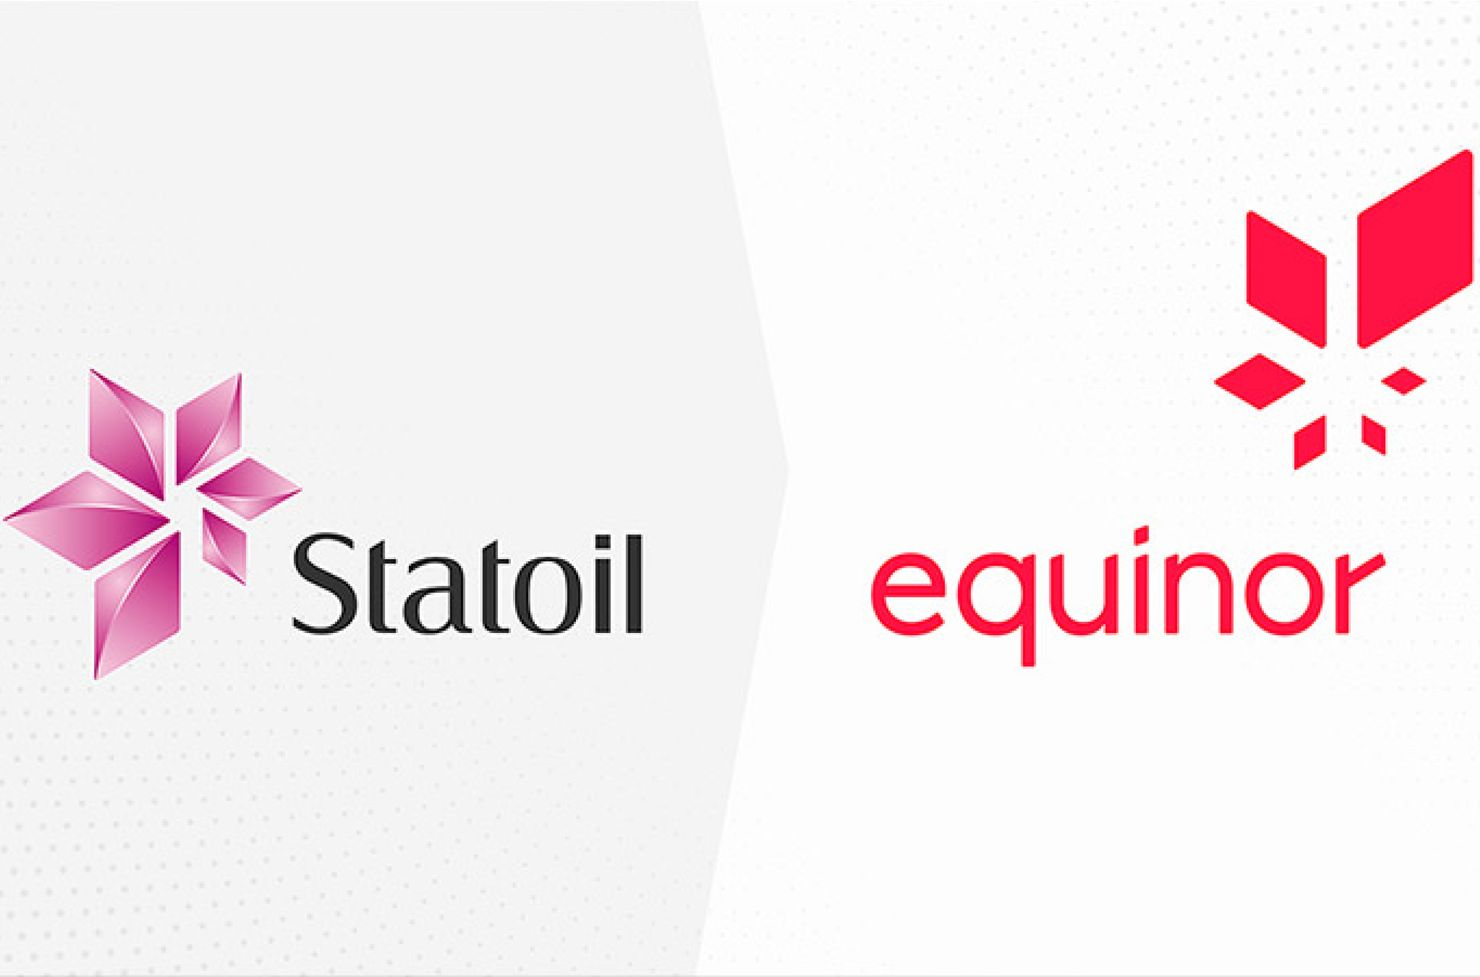 Image 1 for Statoil rebrand to Equinor